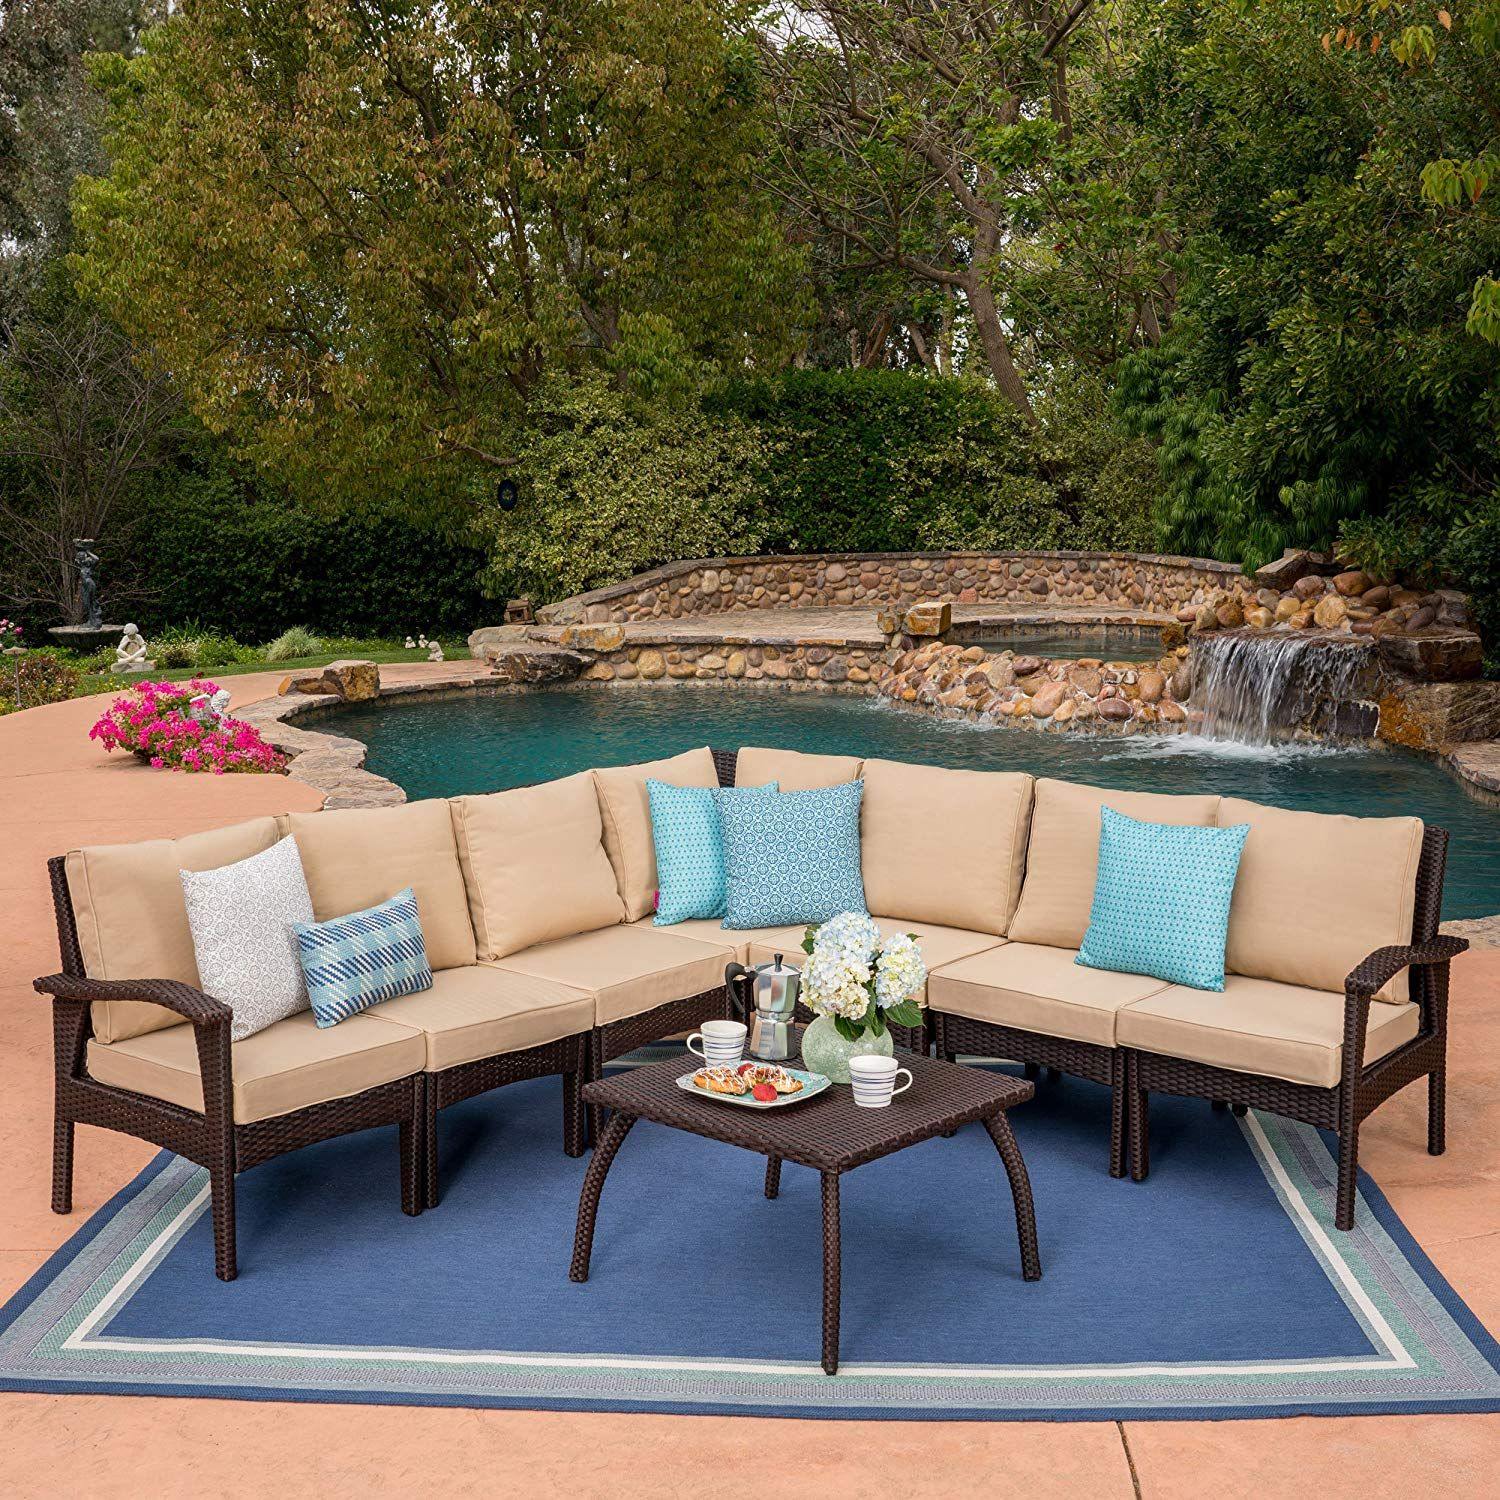 Great Deal Furniture Acuff Outdoor 7 Seater